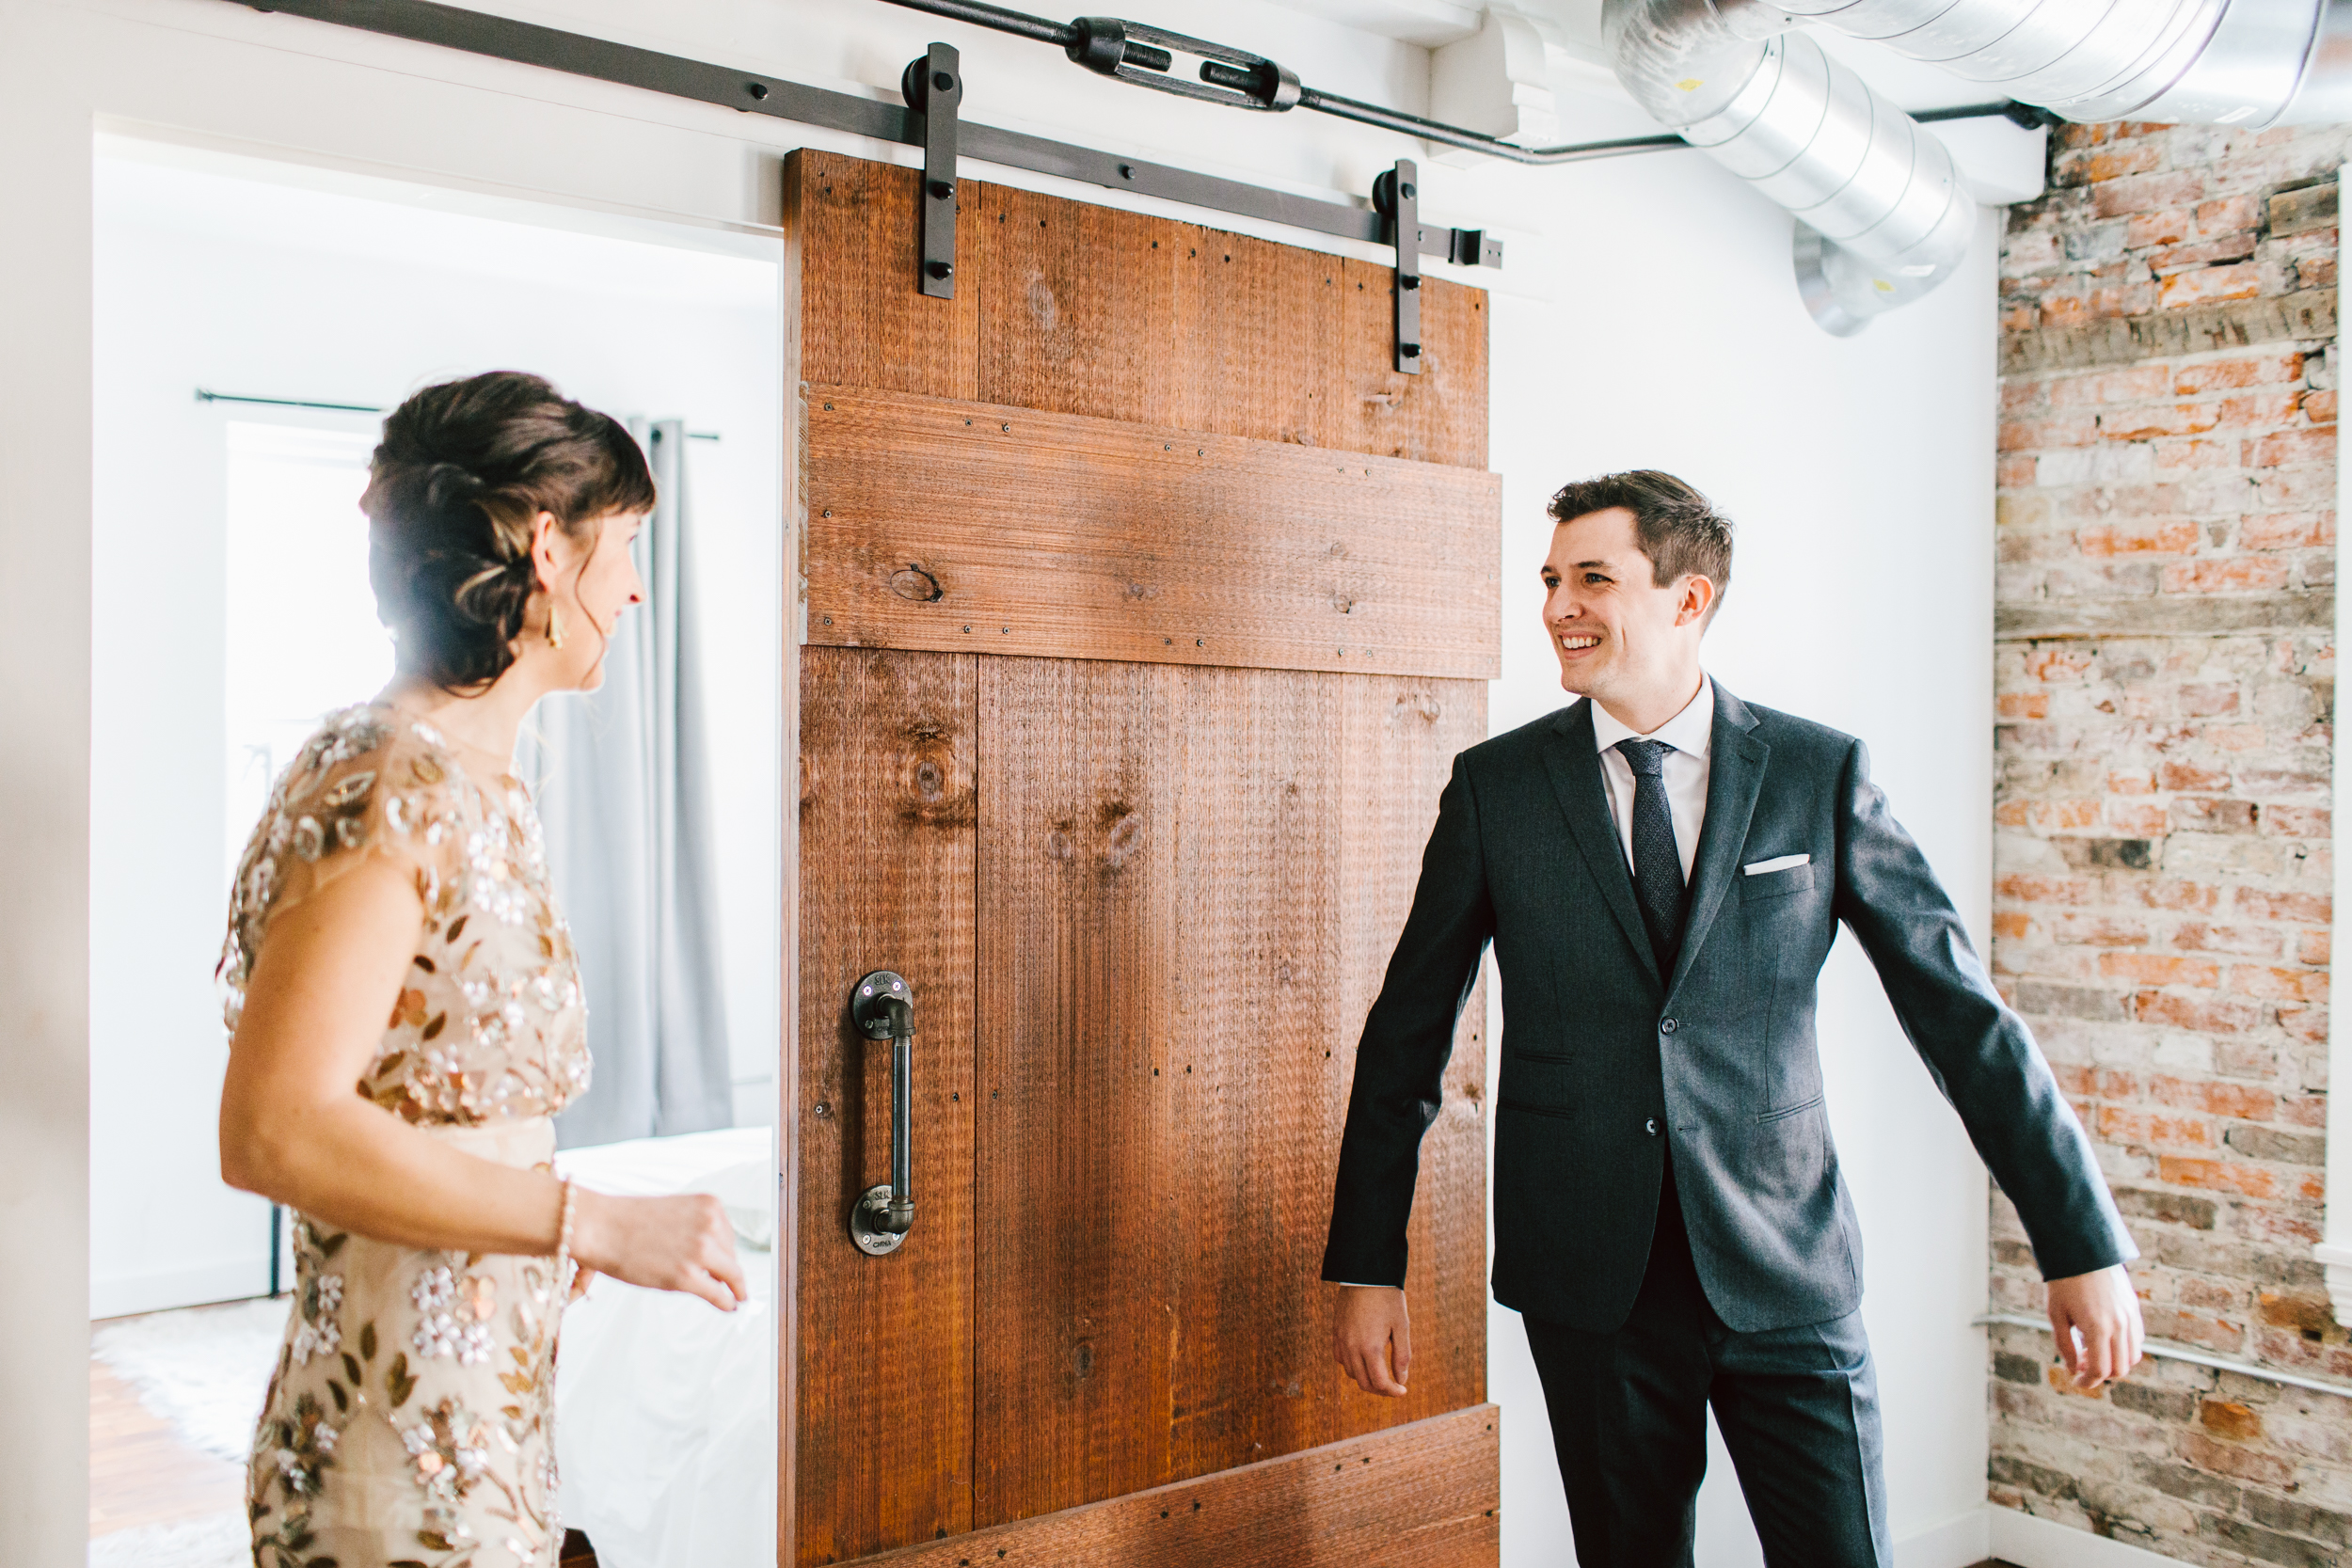 Rory in his  Indochino  suit admiring Grace in her  BHLDN  dress.